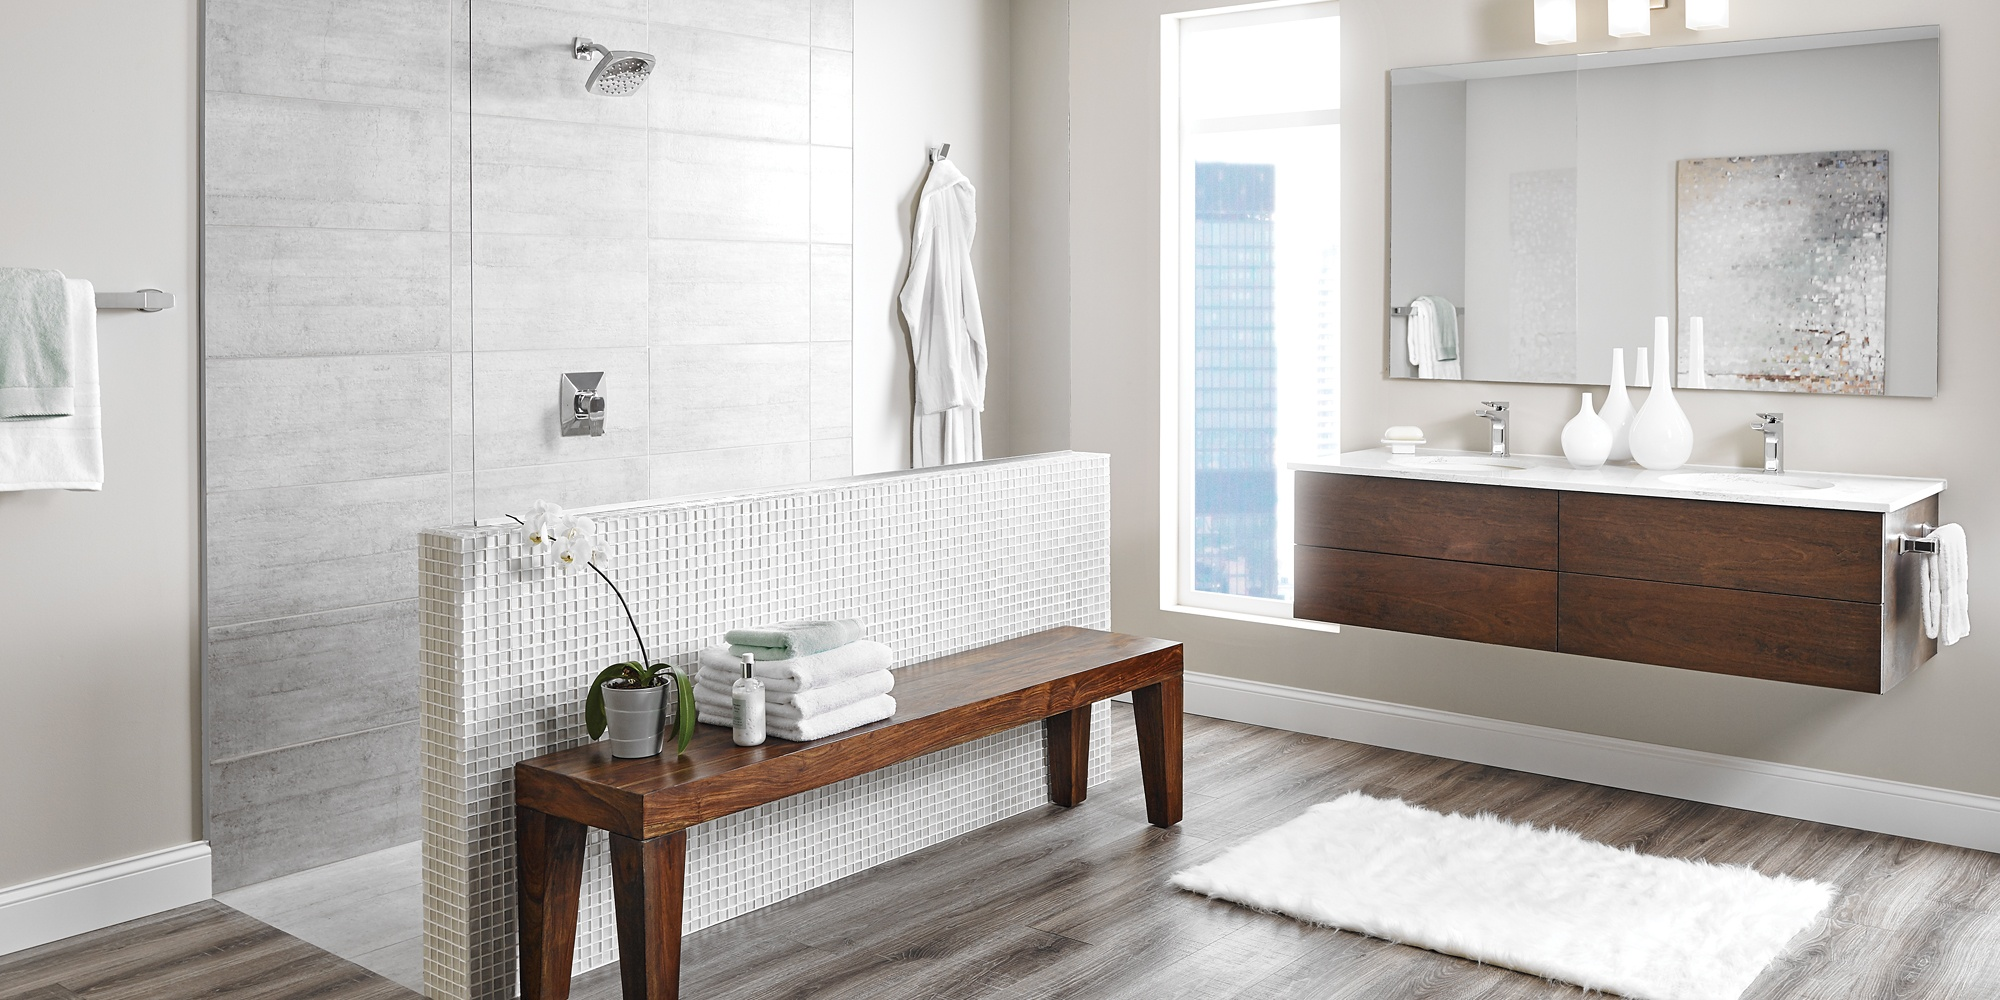 How to Create a Beautiful Hotel Bathroom at Home - Moen Shower Head